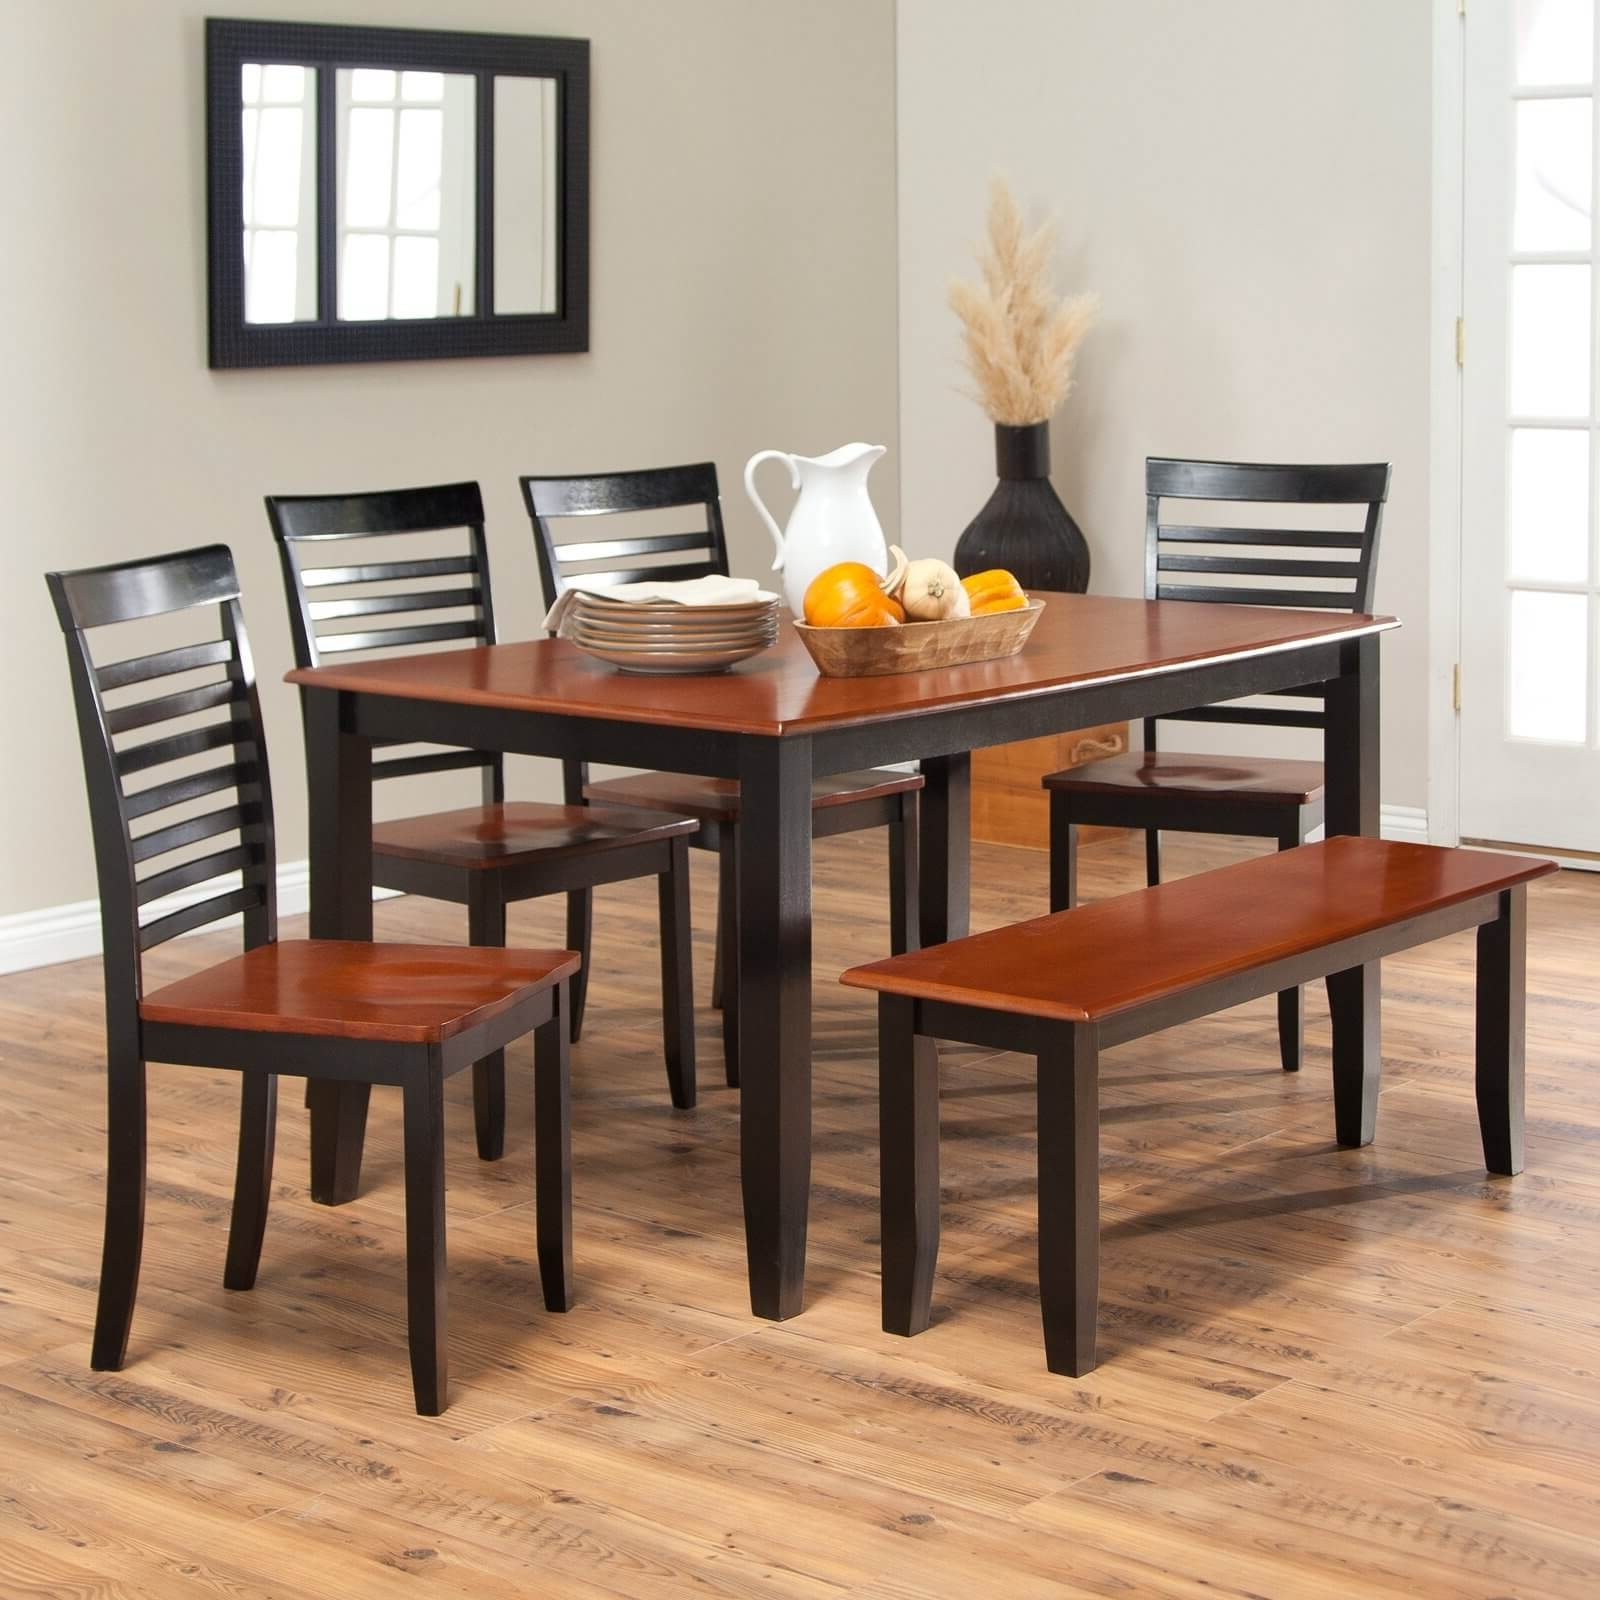 Popular Two Seat Dining Tables For 26 Dining Room Sets (Big And Small) With Bench Seating (2018) (Gallery 18 of 25)